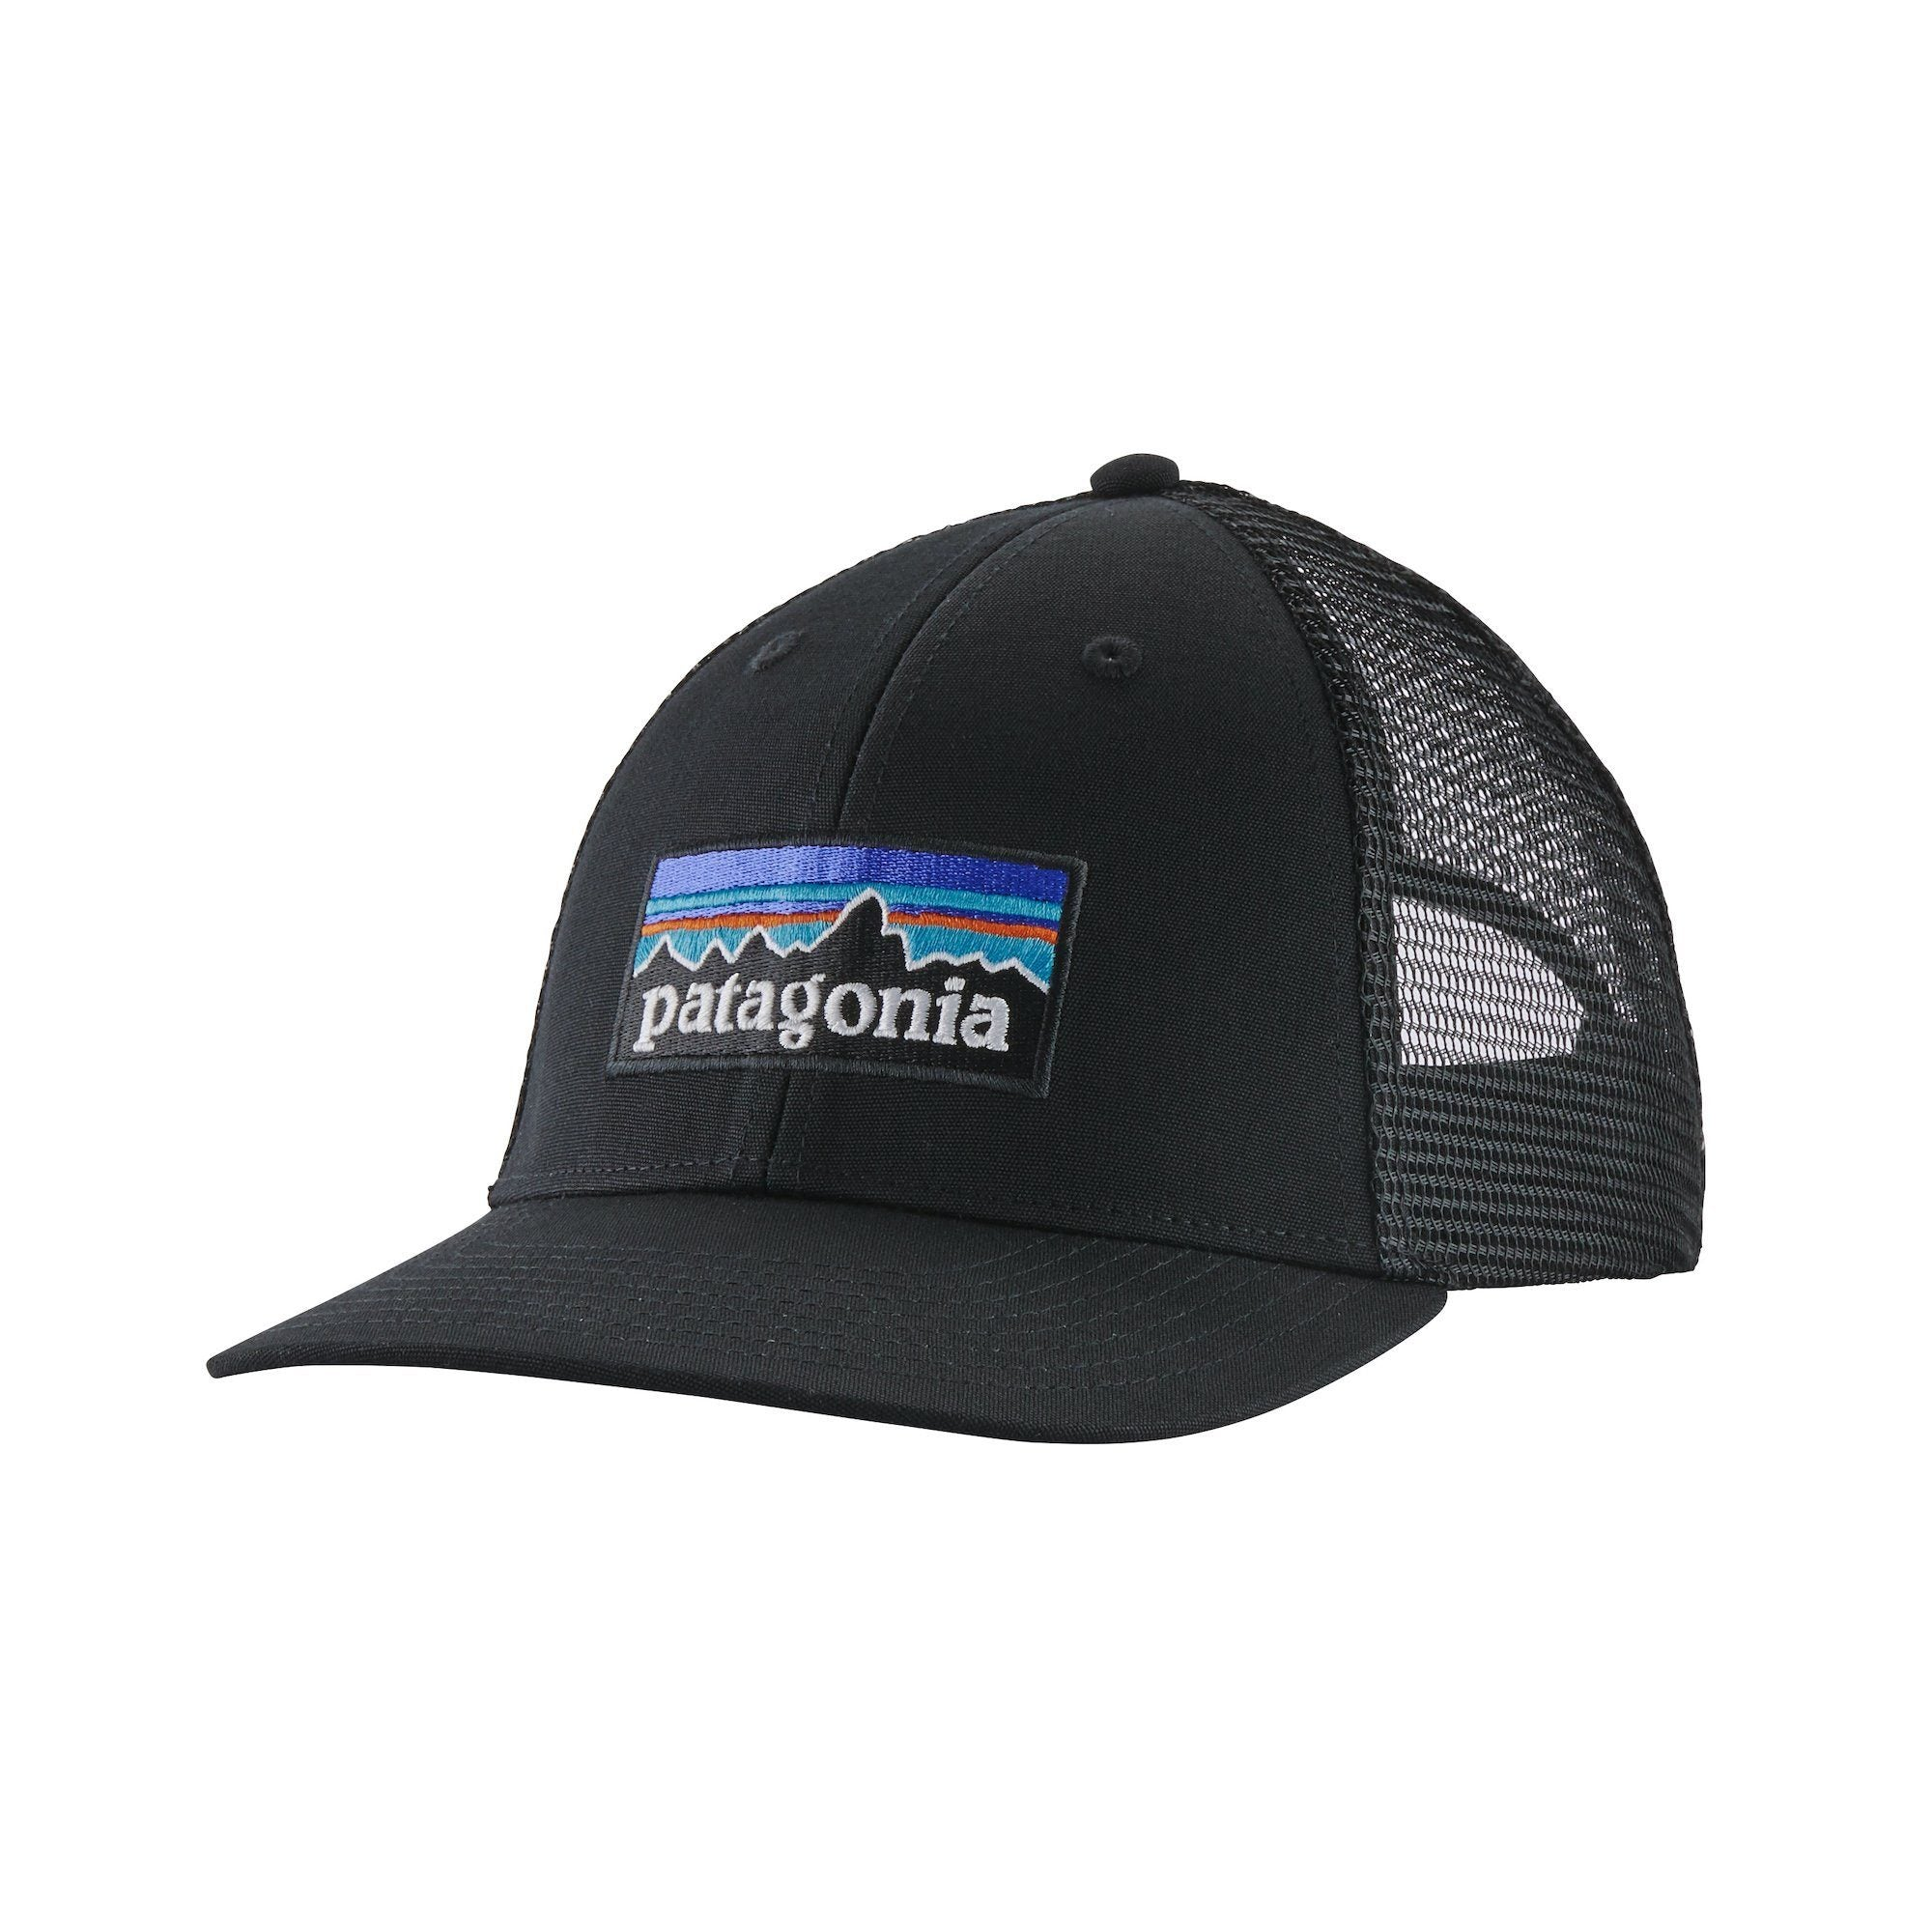 Patagonia - P-6 LoPro Trucker Cap - Organic Cotton - Weekendbee - sustainable sportswear